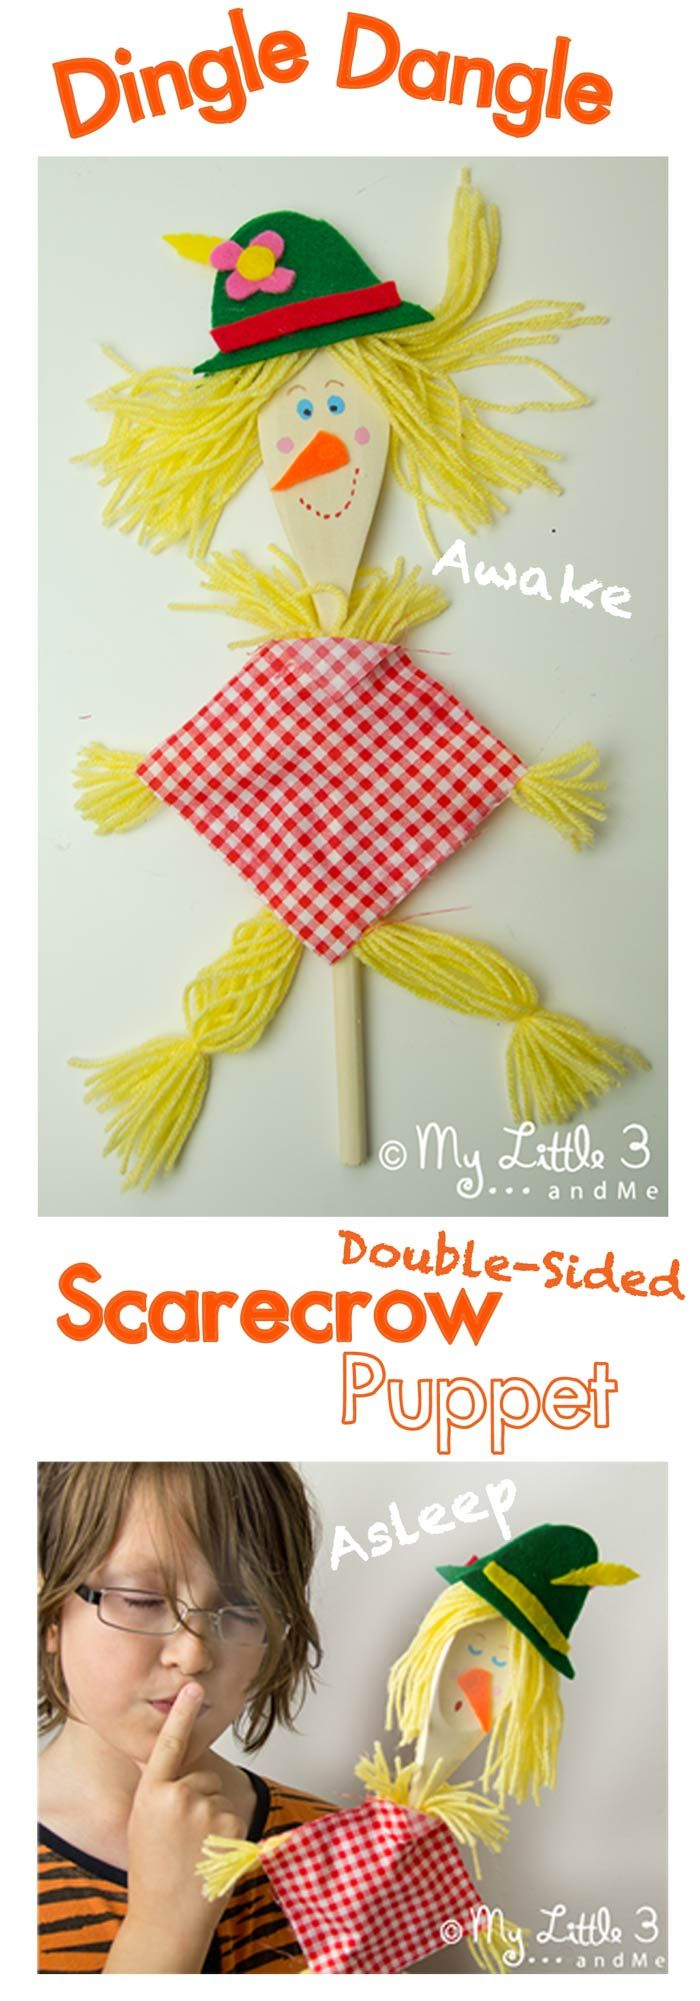 96eb7be3b Make an easy no-sew Dingle Dangle Scarecrow Puppet to bring the song to  life. He's a double sided puppet that sleeps and wakes for super  interactive fun!